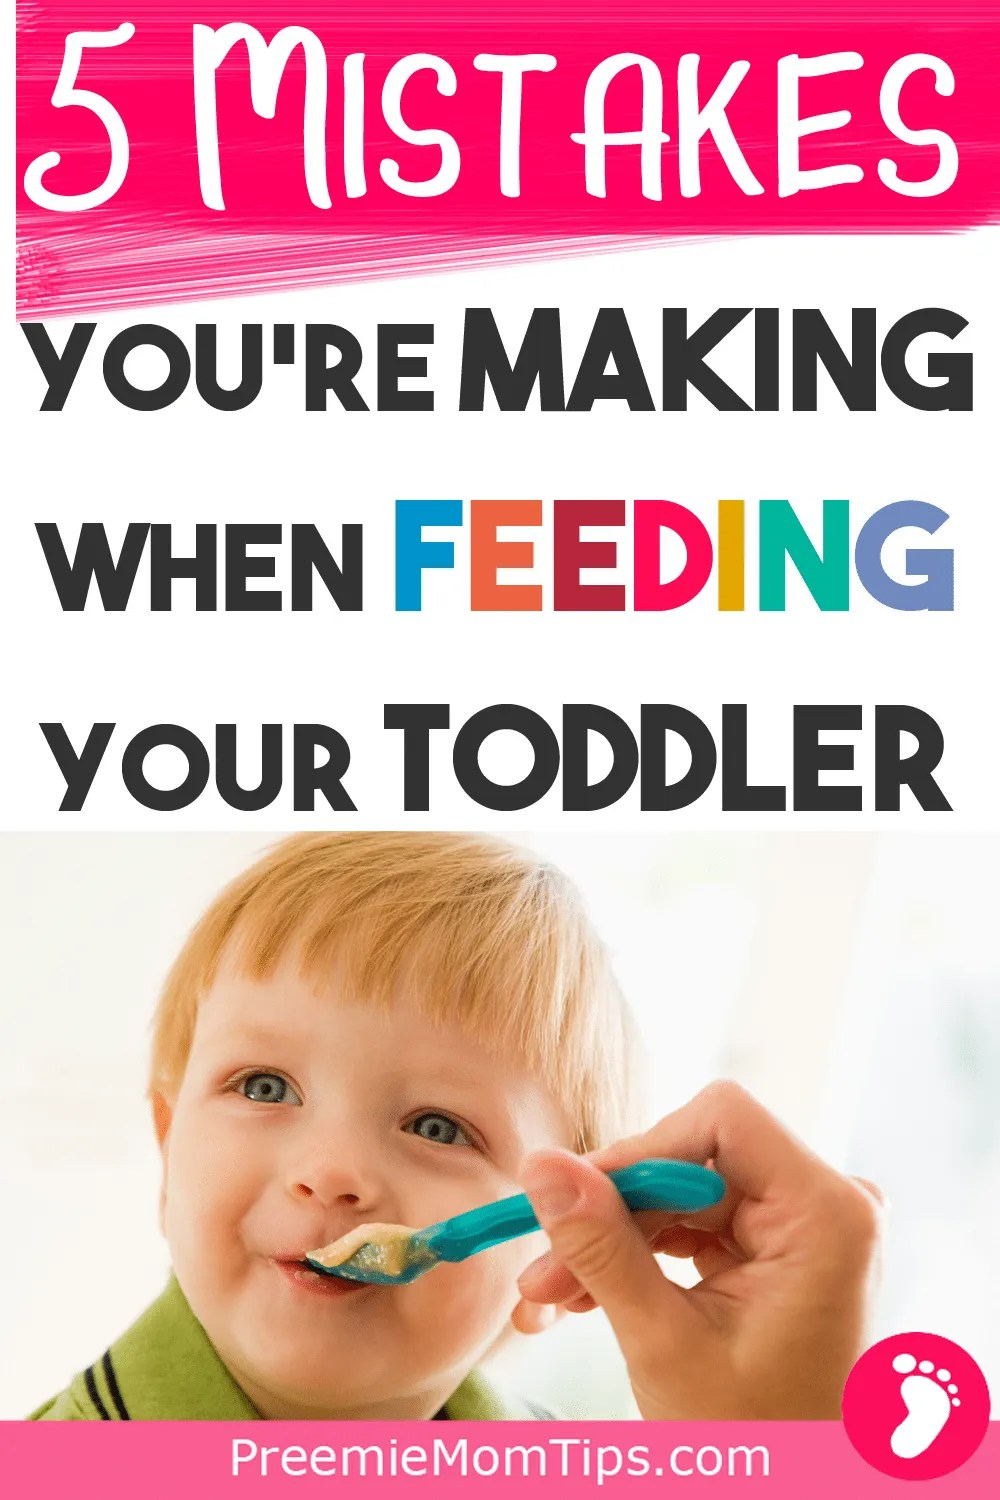 I love this! Parenting toddlers can be challenging, but parenting picky eater toddlers is a whole new level! As parents, we some times fall into a bit of a desperation trying to get our children to eat... and some times we make mistakes. Here are the top mistakes we made when feeding our toddler. #toddler #toddlermom #pickyeater #terribletwos